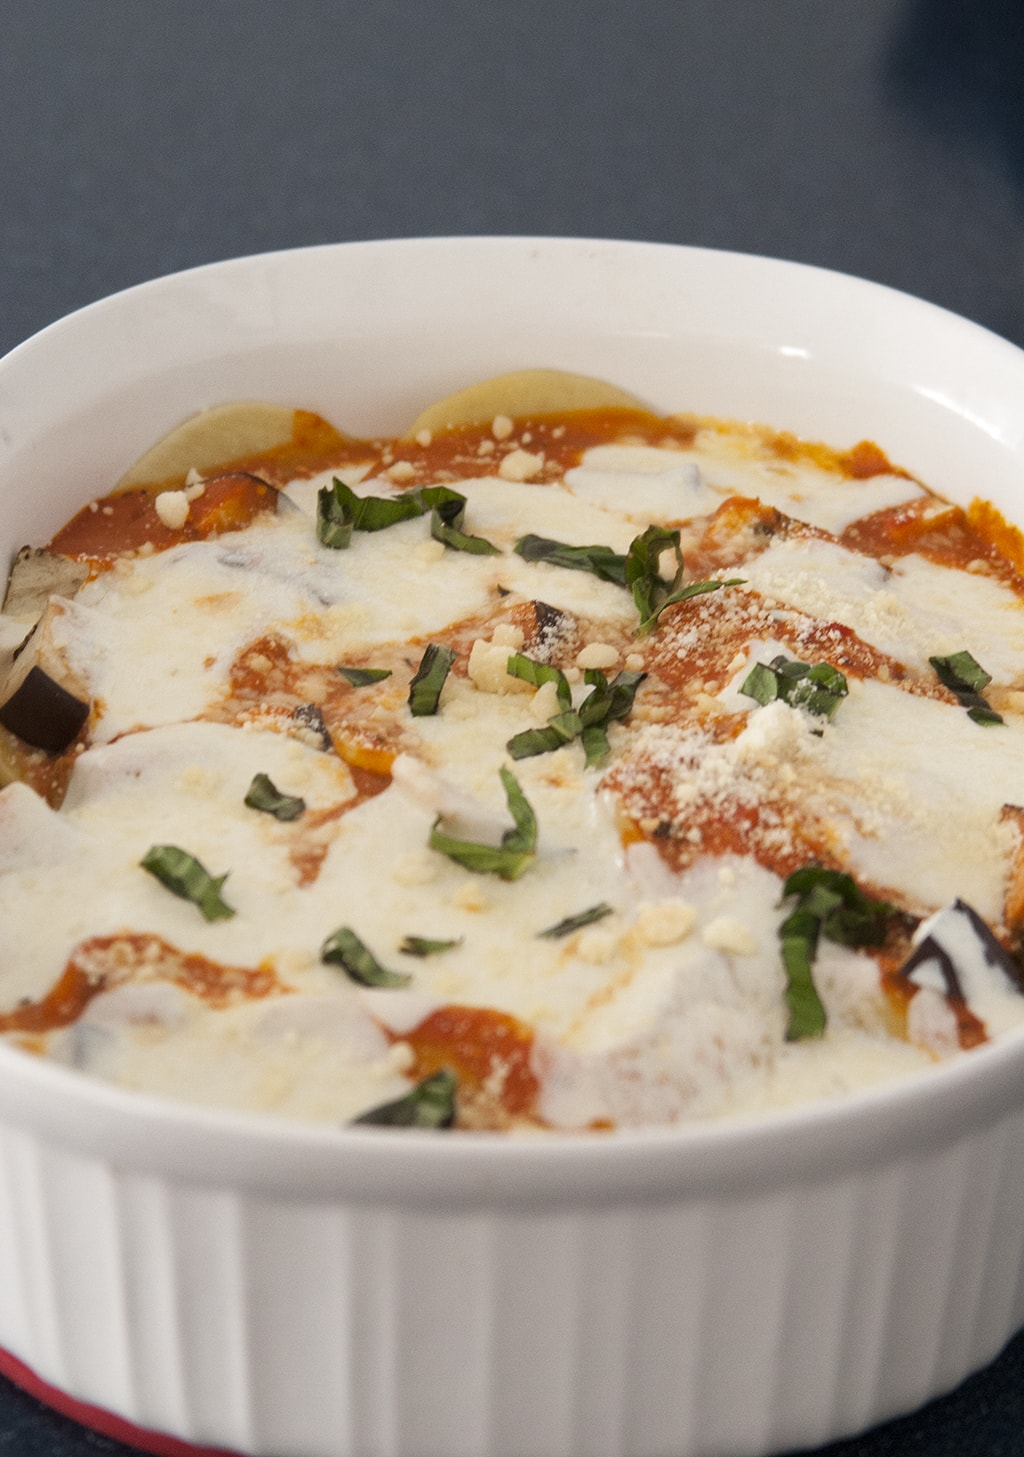 Baked Ravioli in a white dish